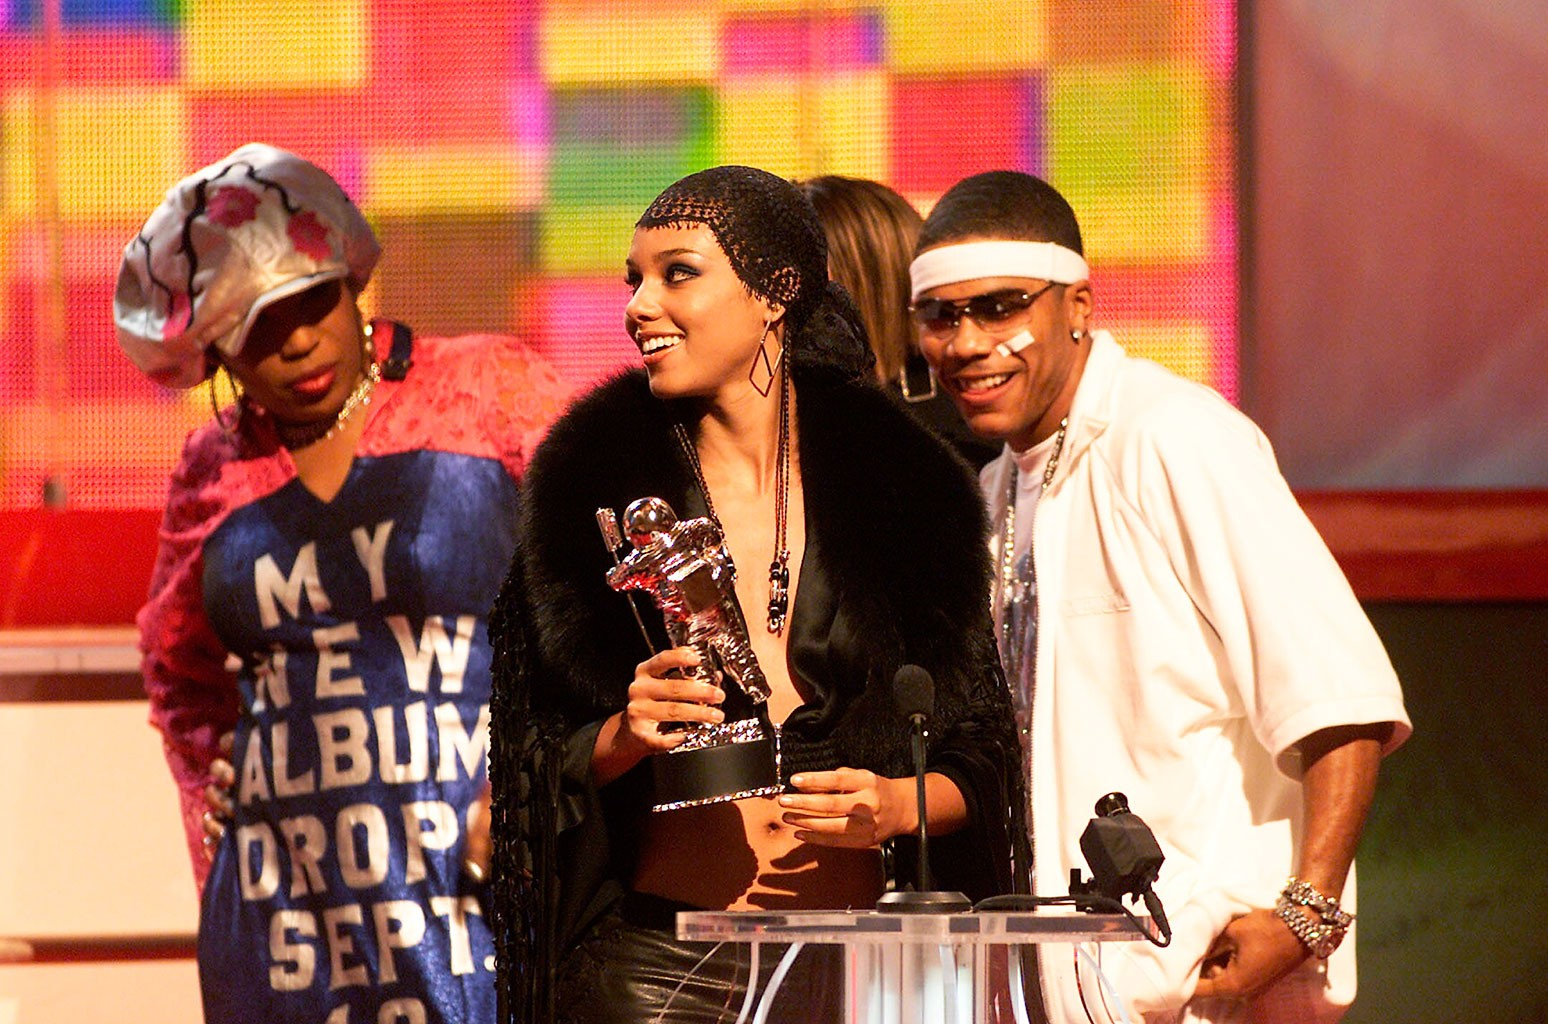 Macy Gray, Alicia Keys and Nelly